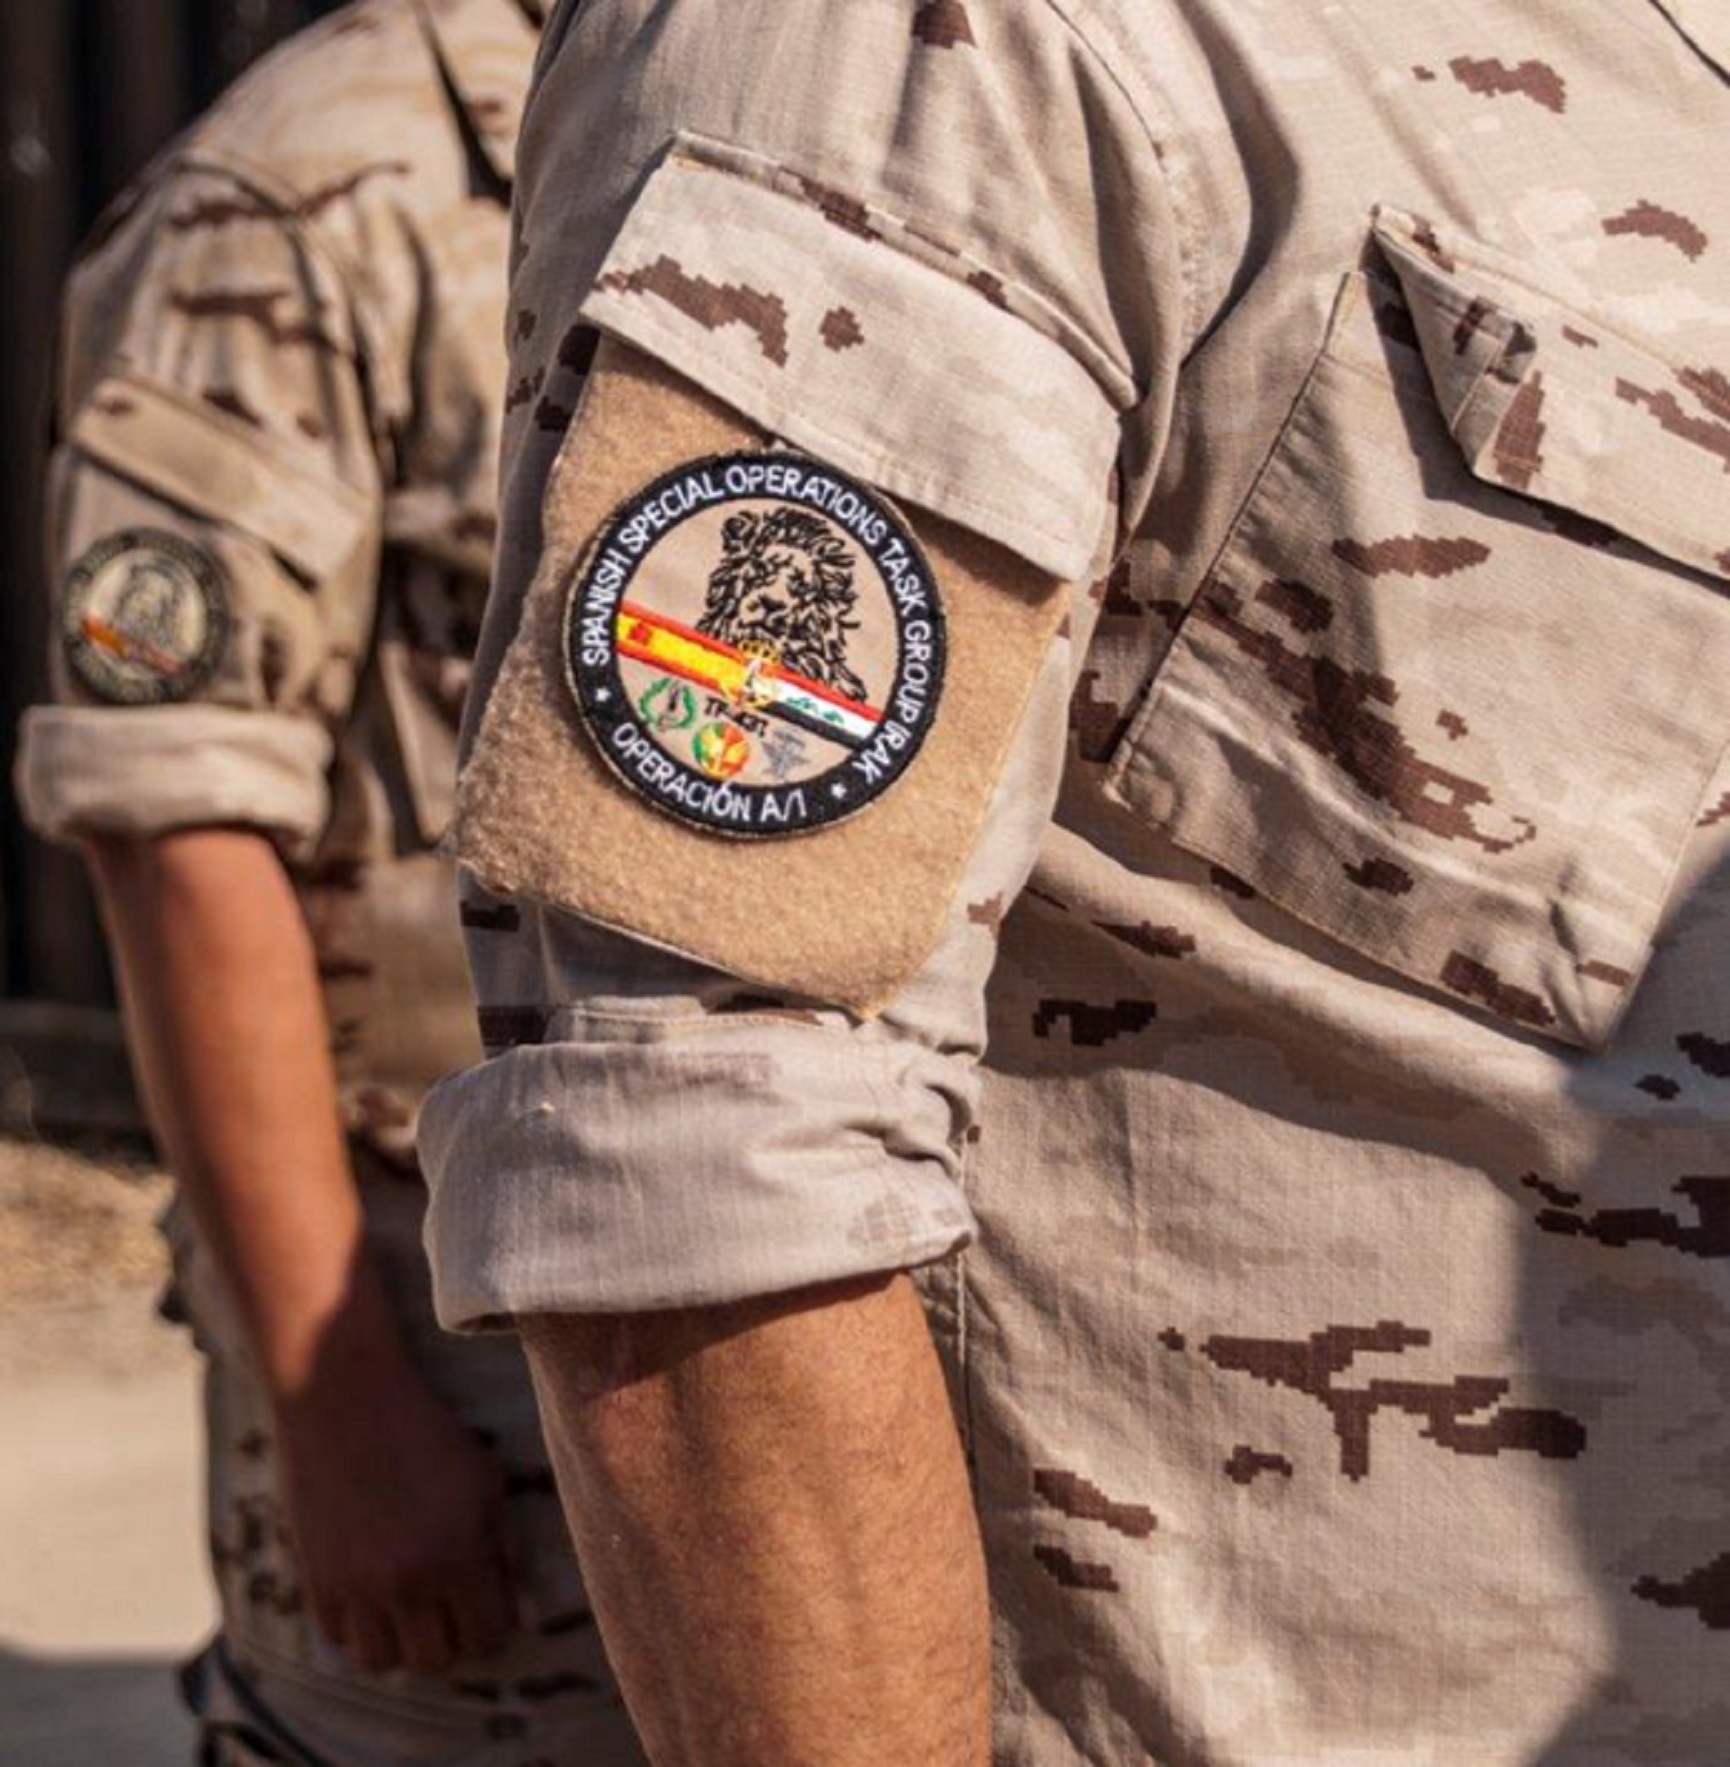 The Spanish Navy leads for the first time the Special Operations in the fight against DAESH in Iraq